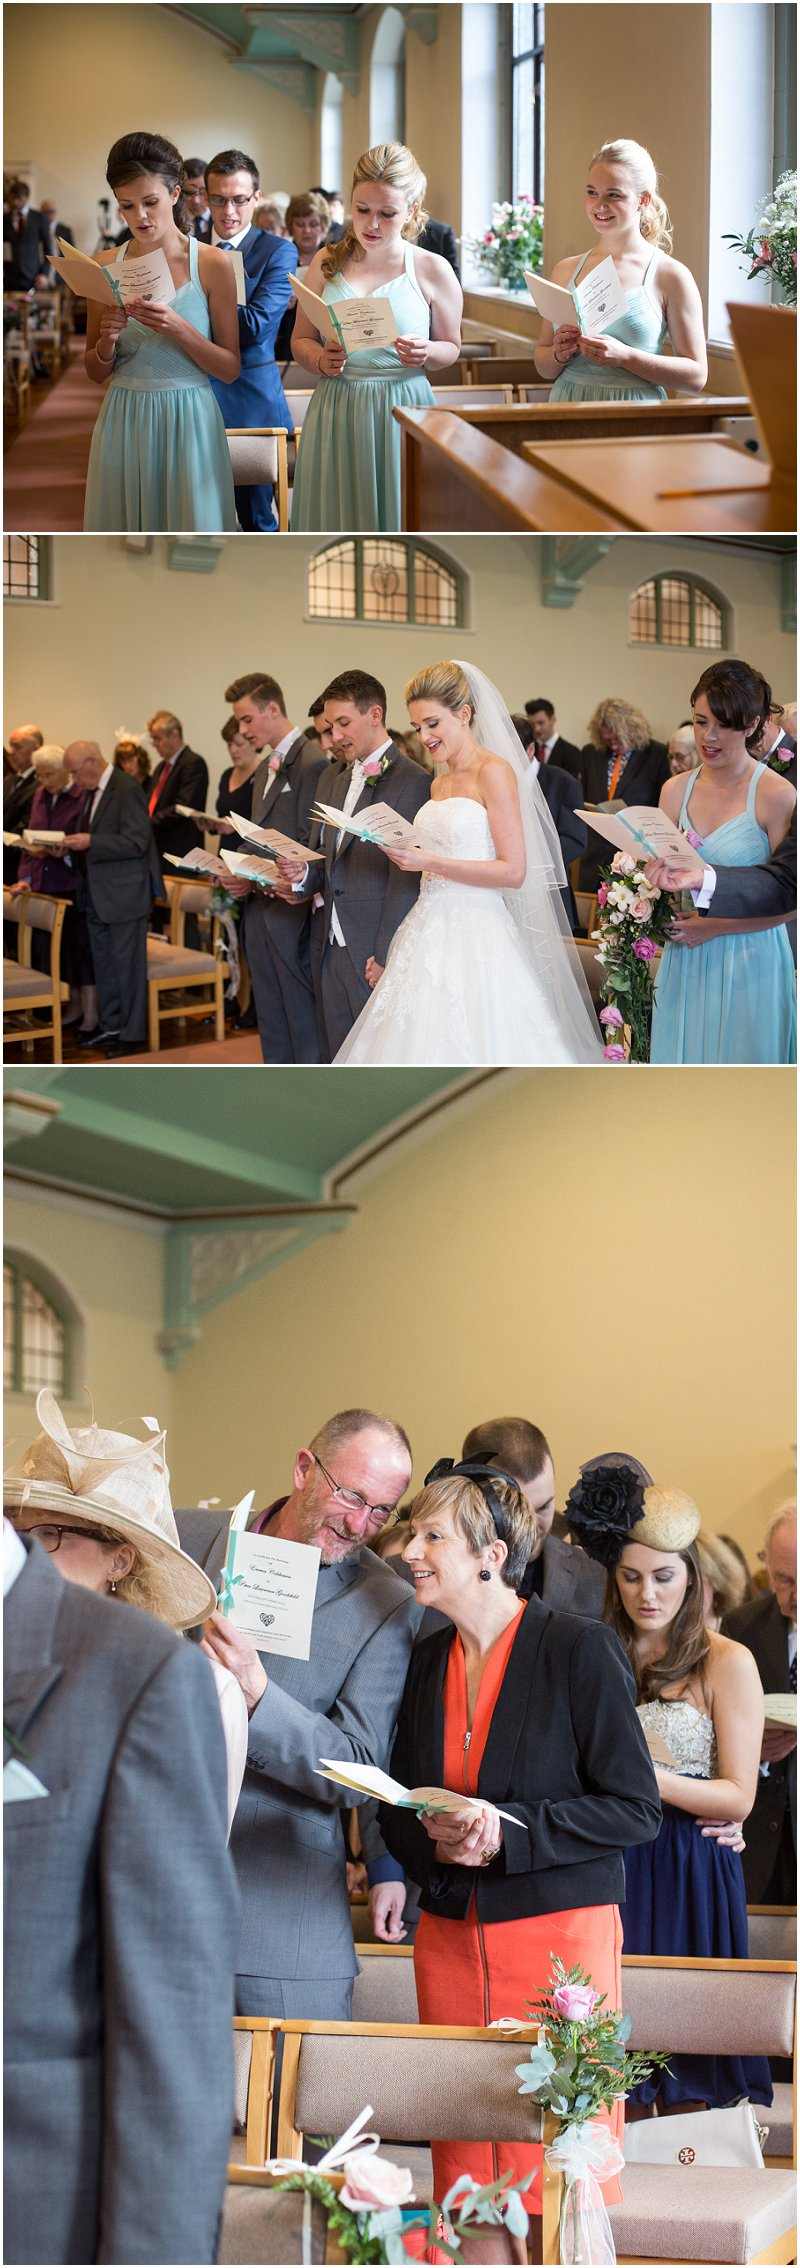 Ceremony at Chester wedding